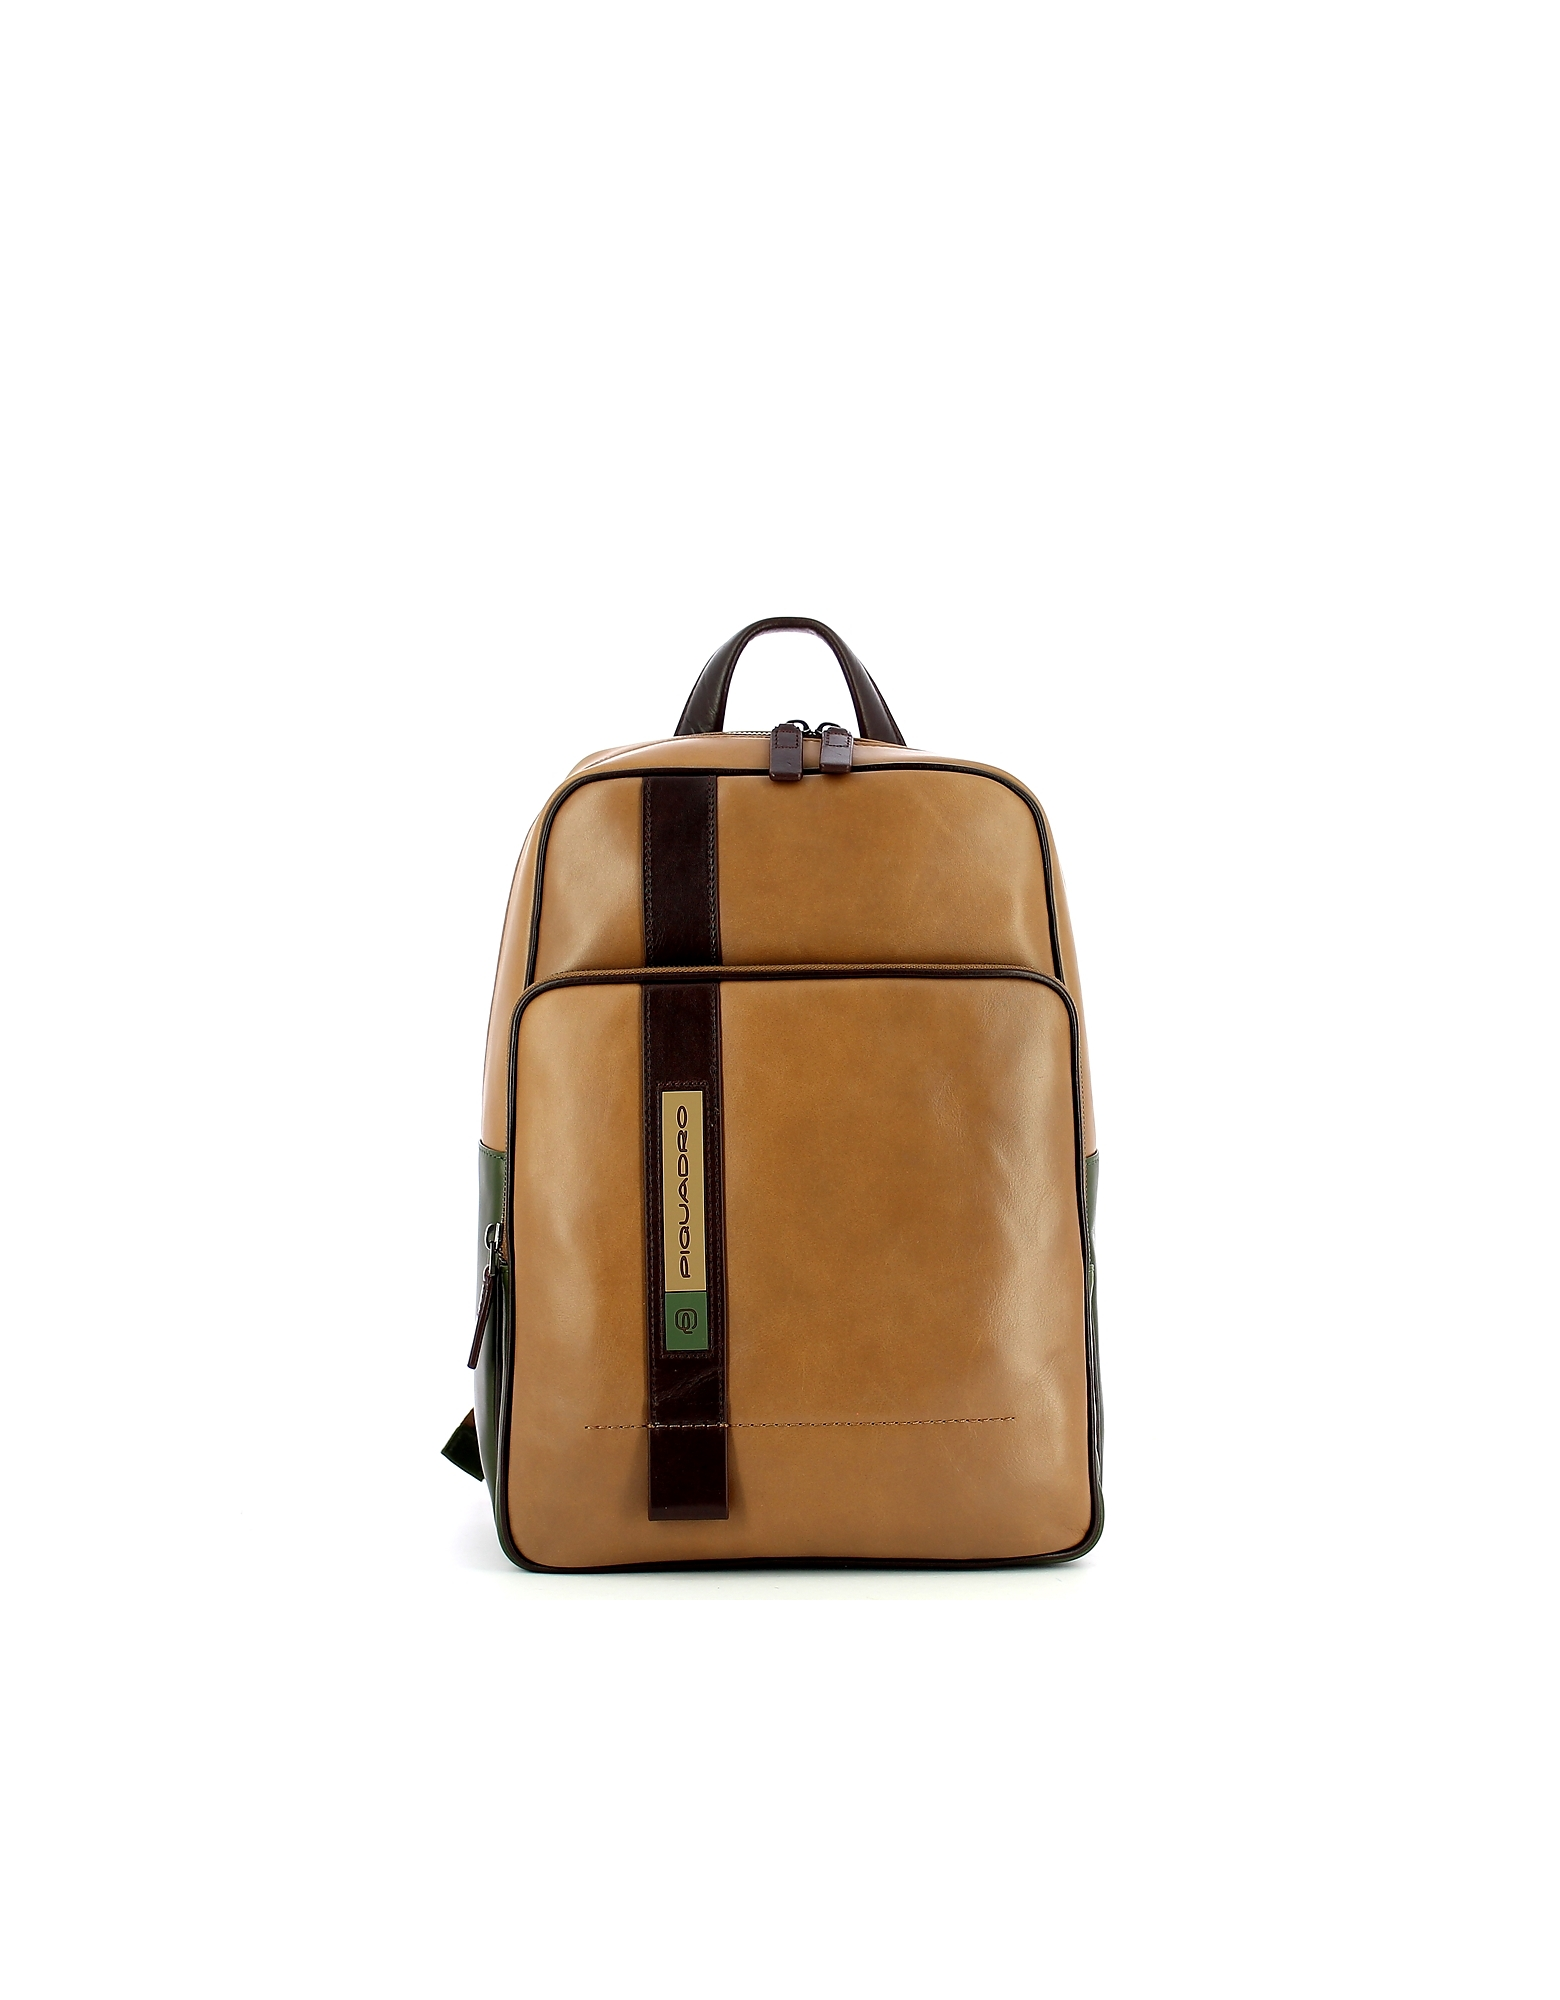 Piquadro Designer Men's Bags, Men's Beige Backpack